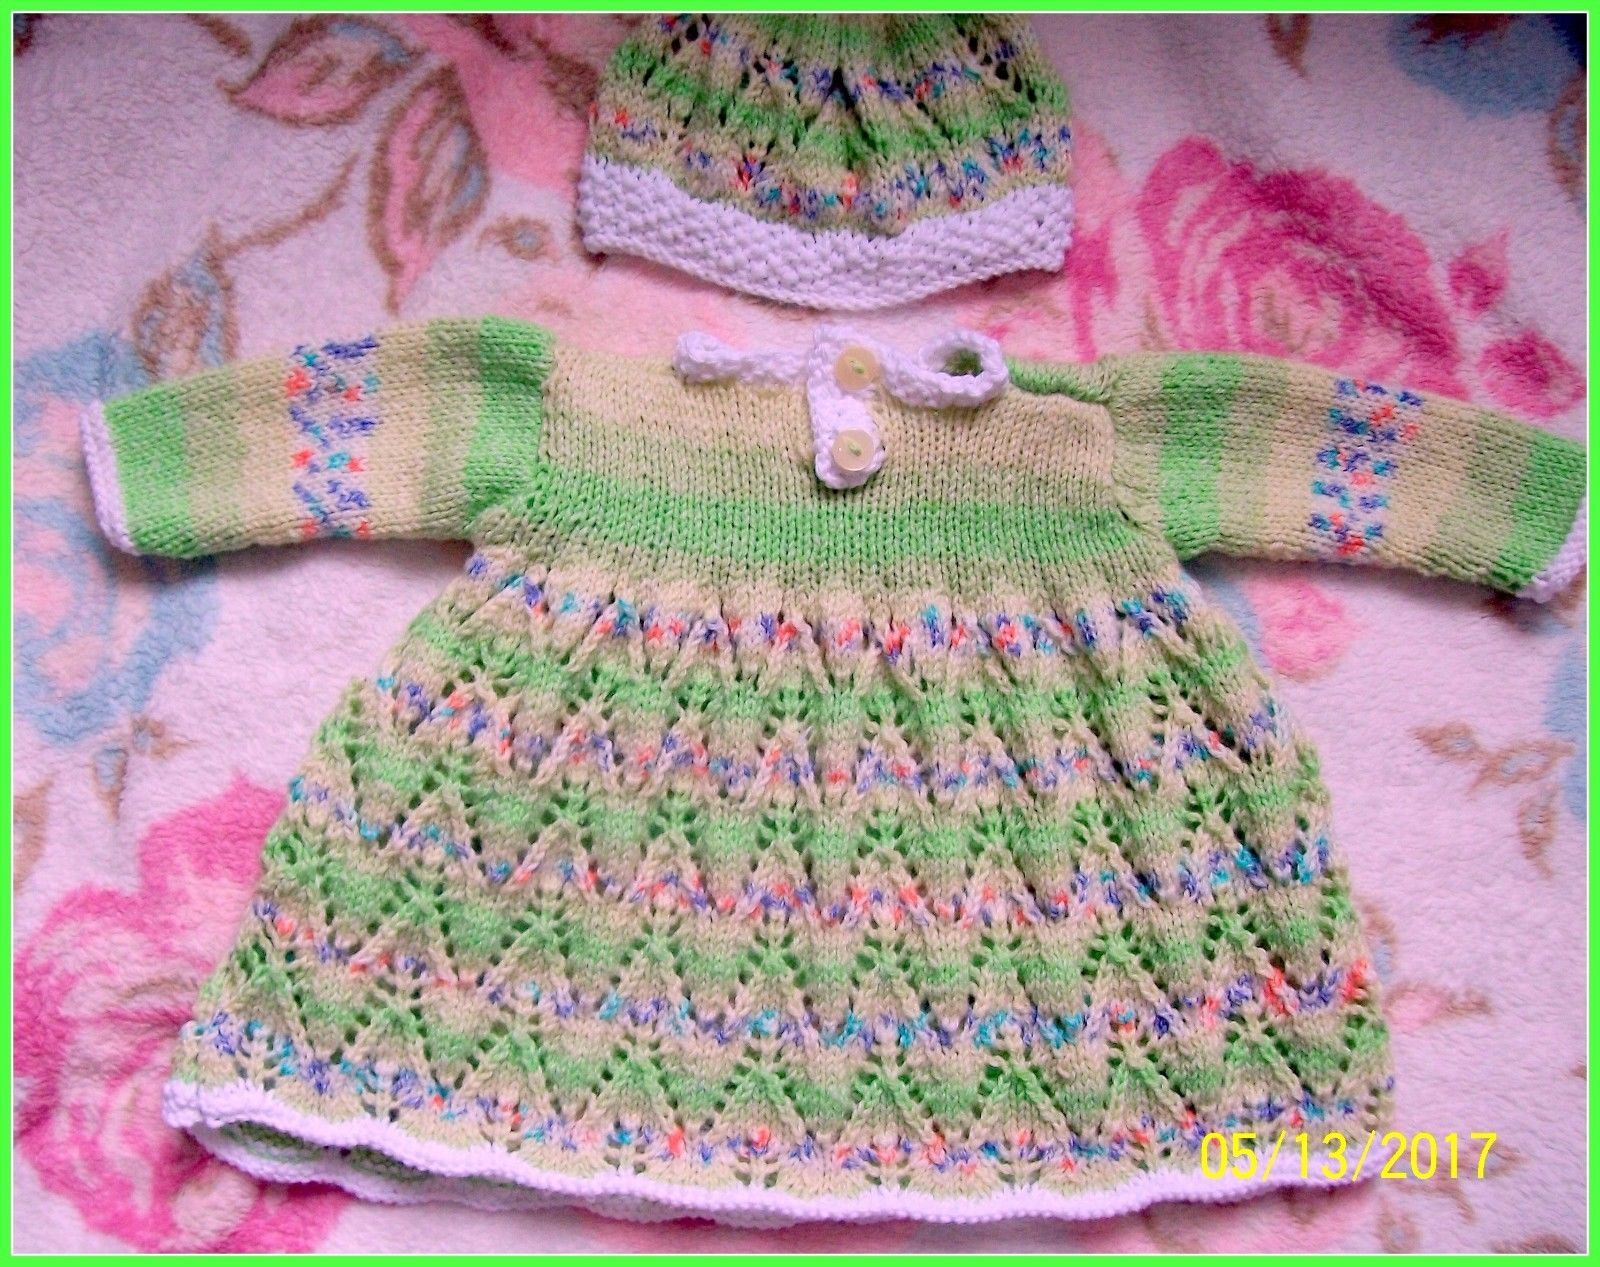 7ab63bb204f98 Newborn Baby Girls Hand Knitted Outfit Reborn Dolls Clothes 0-3 mth BABY  SOFT